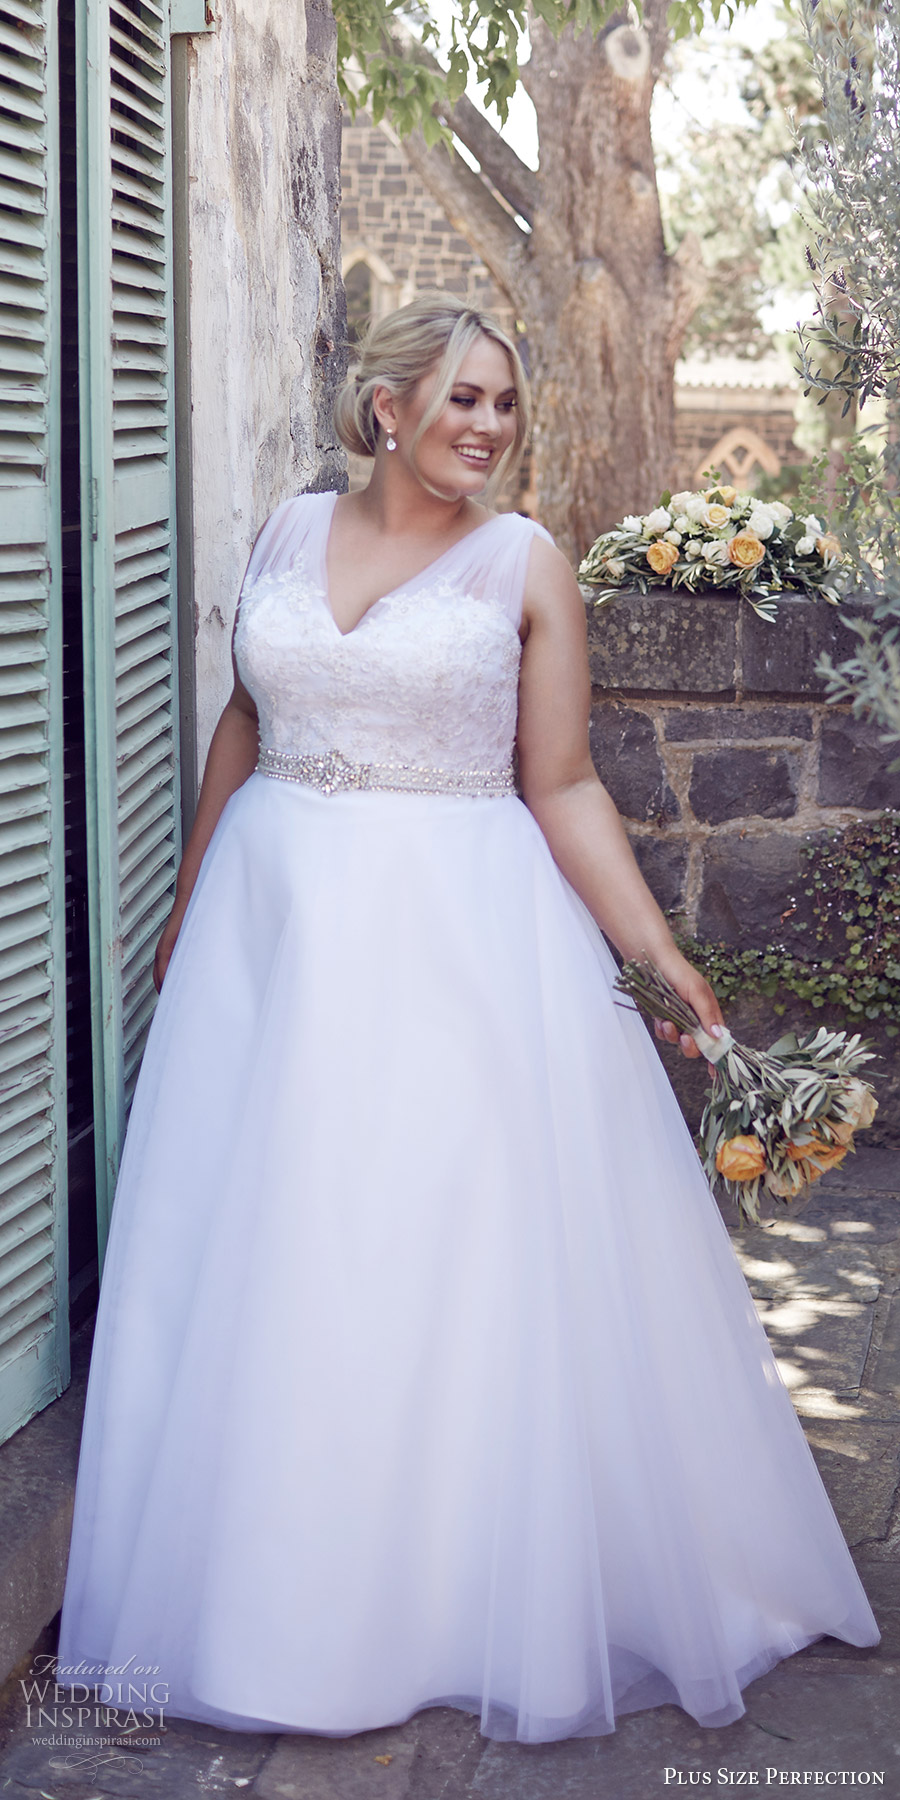 Plus size perfection wedding dresses it s a love story for Wedding dress plus size